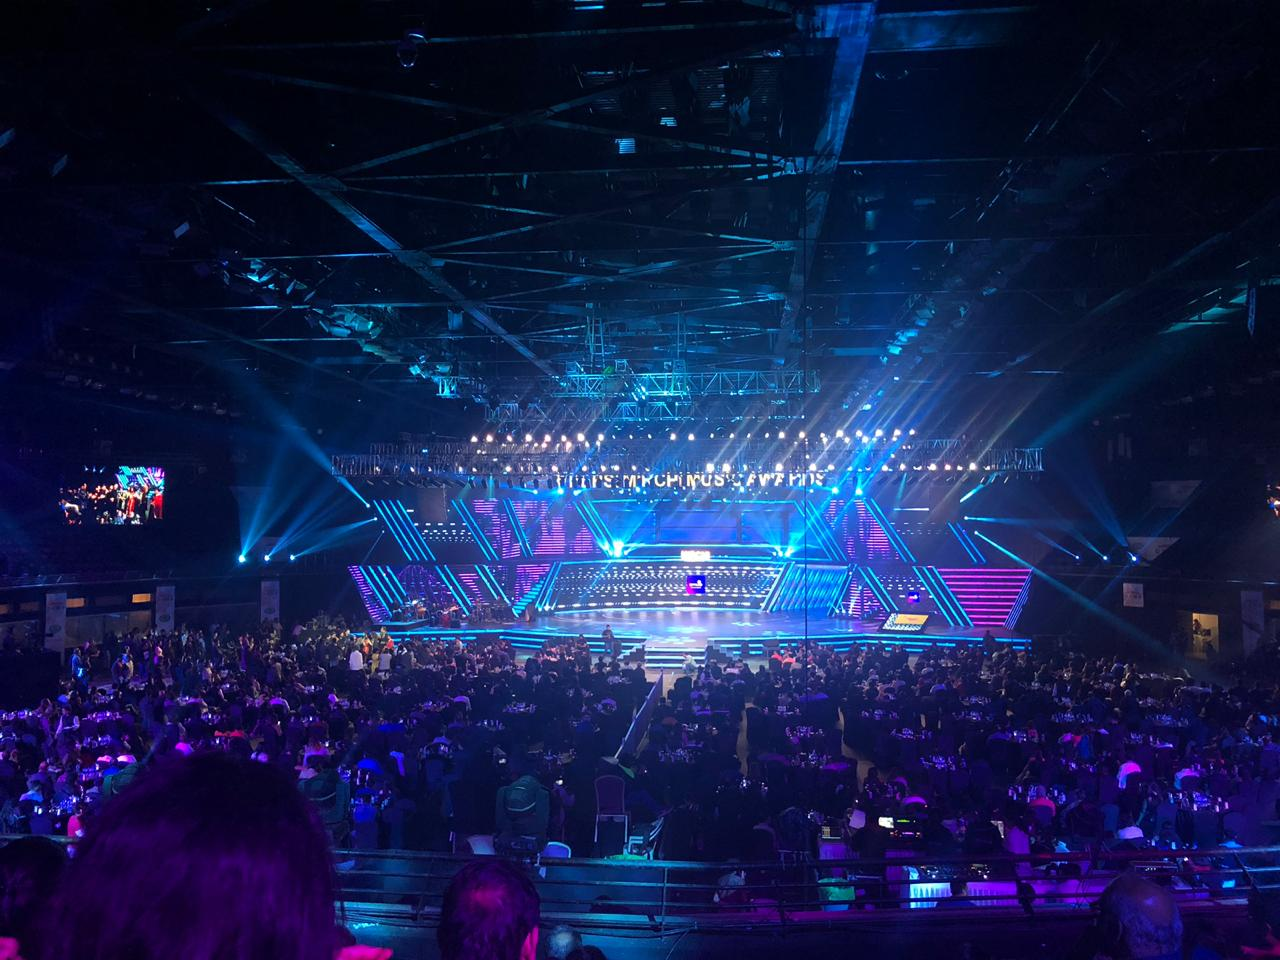 Smule at the 2019 MMA